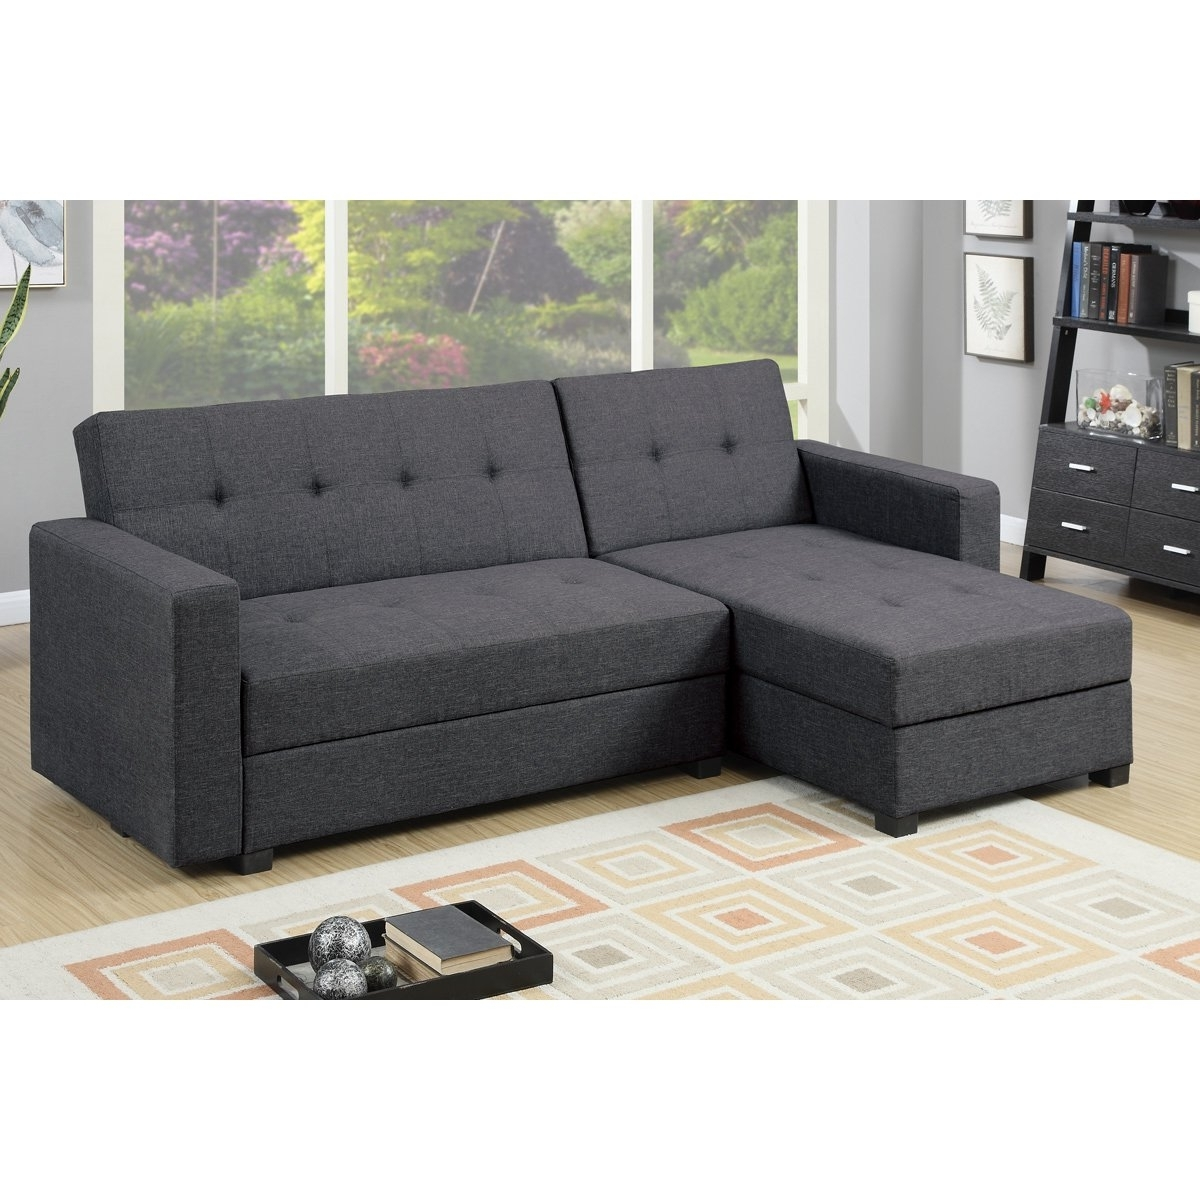 Favorite Furniture: Reversible Chaise Sectional For Comfortable Living Room Inside Sectional Chaises (View 3 of 15)